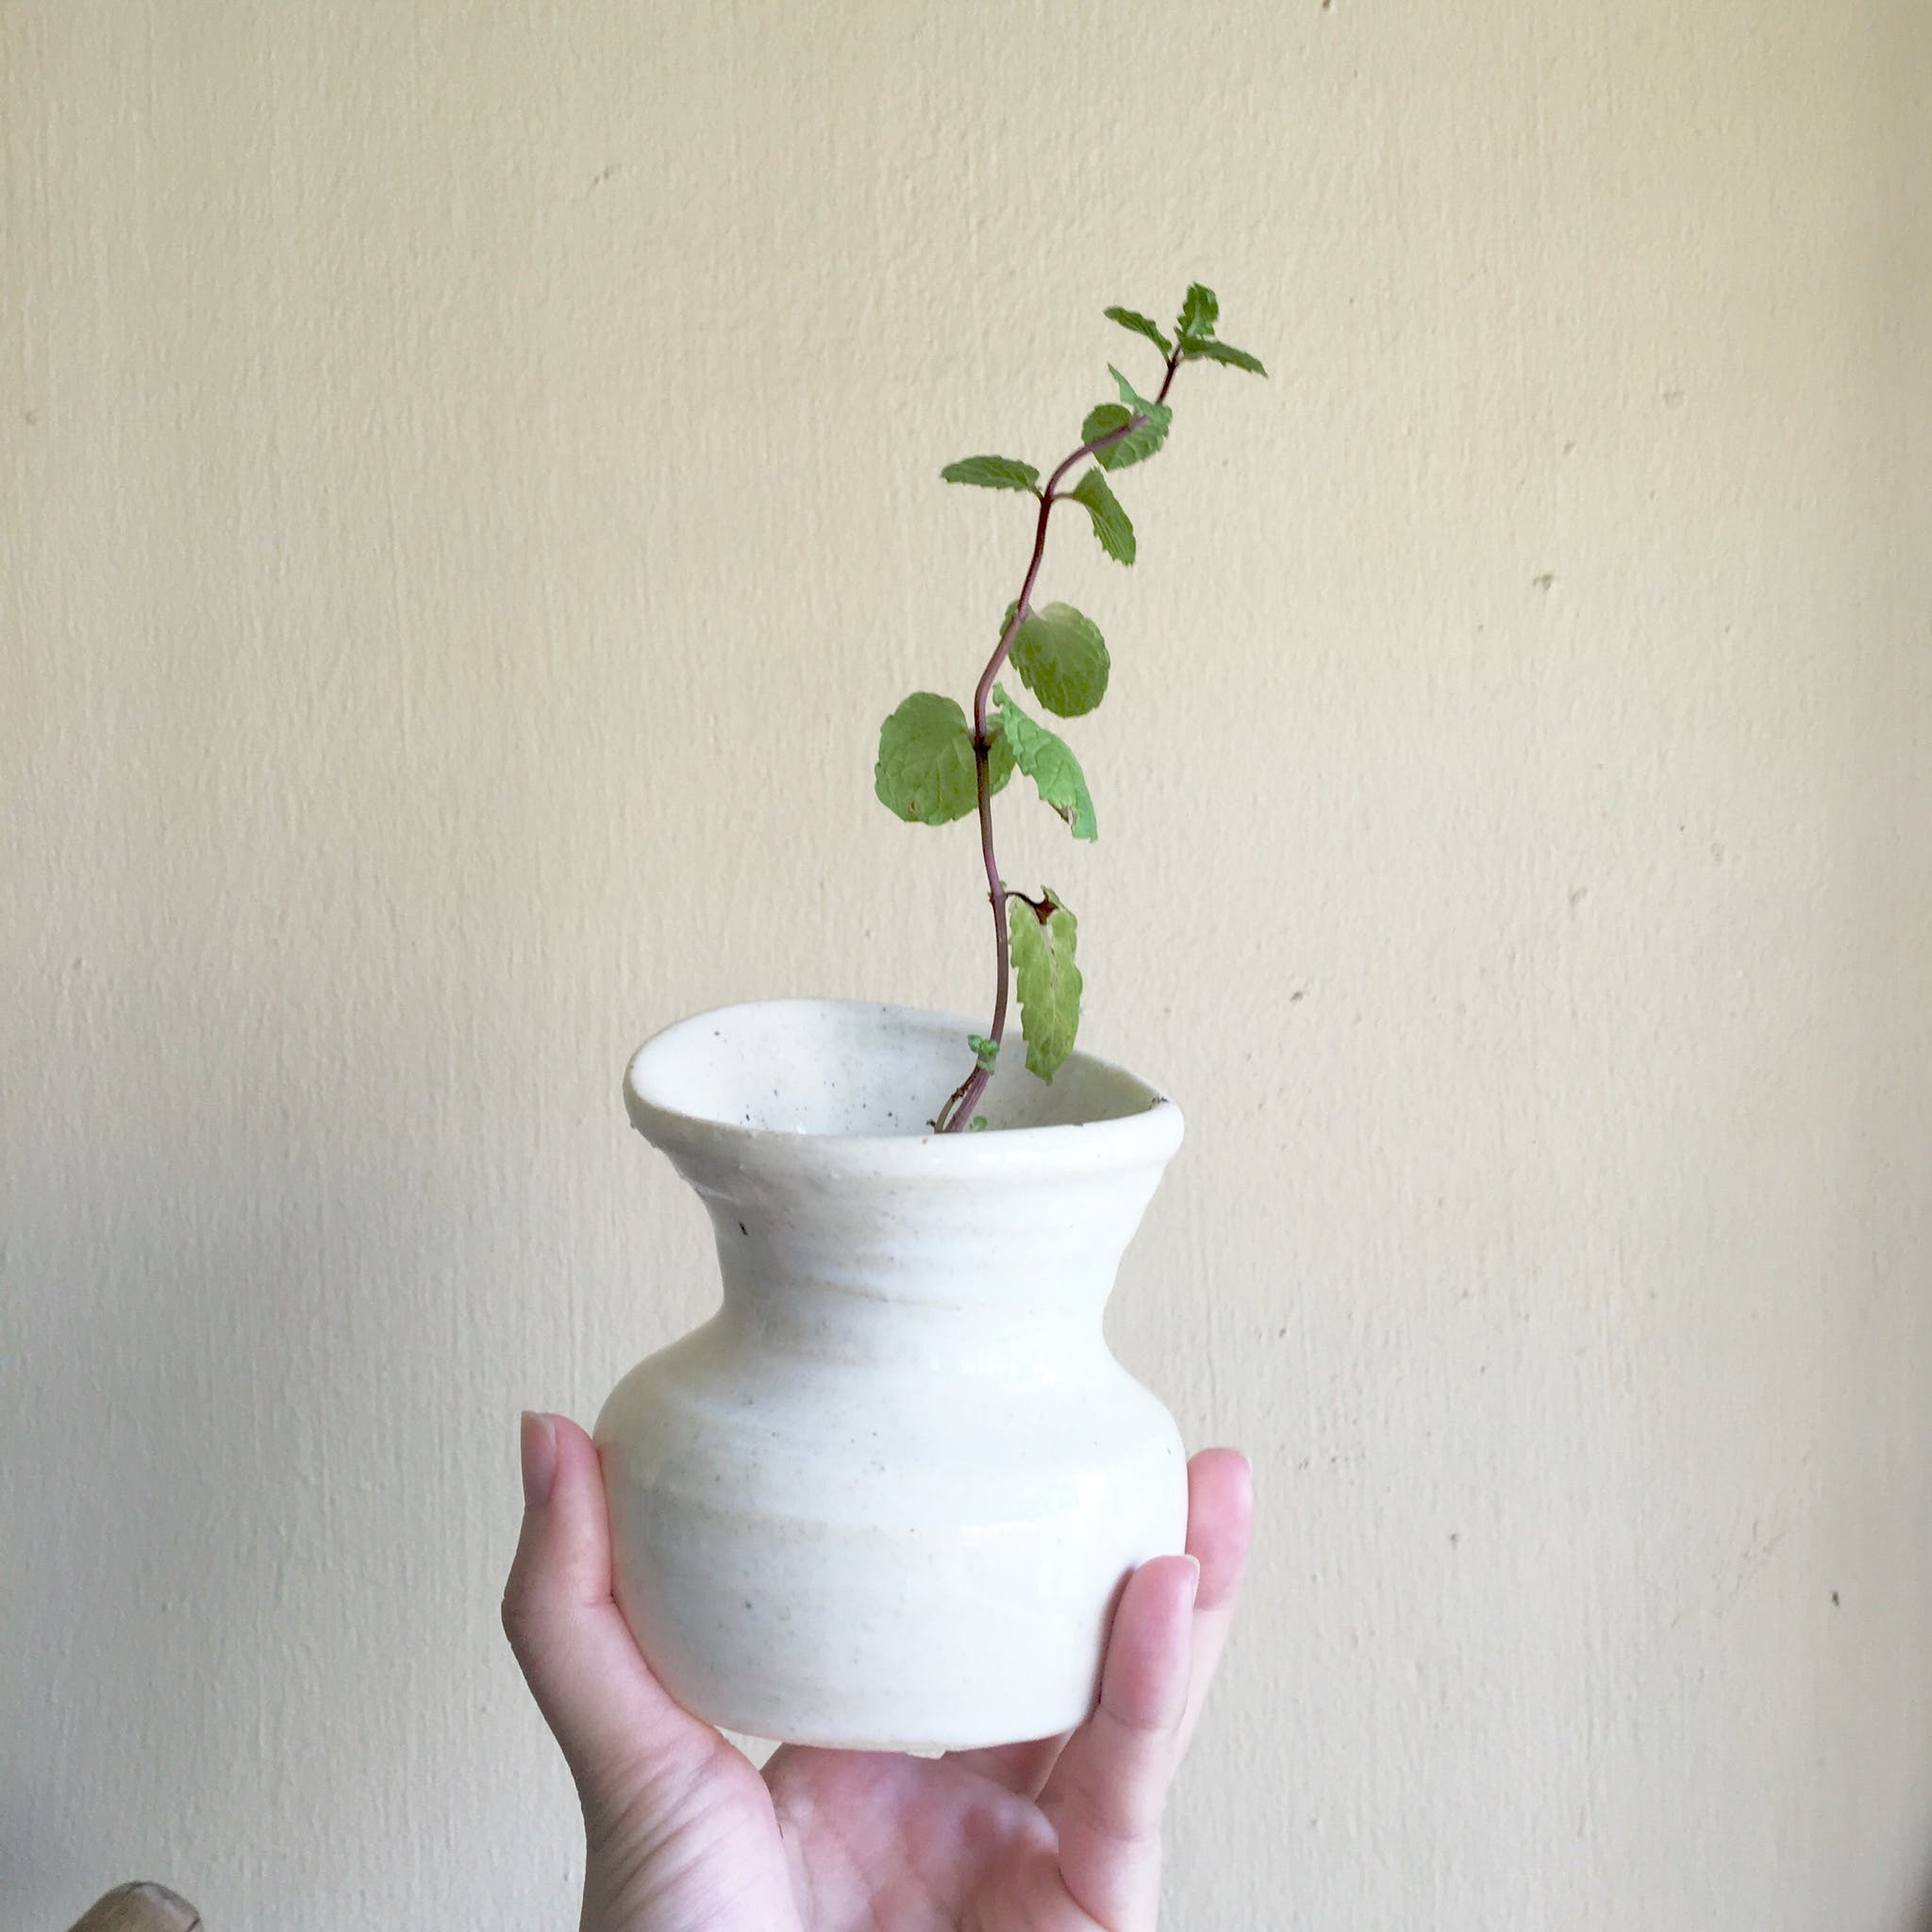 Free stock photo of ceramic, handmade, peppermint, plant